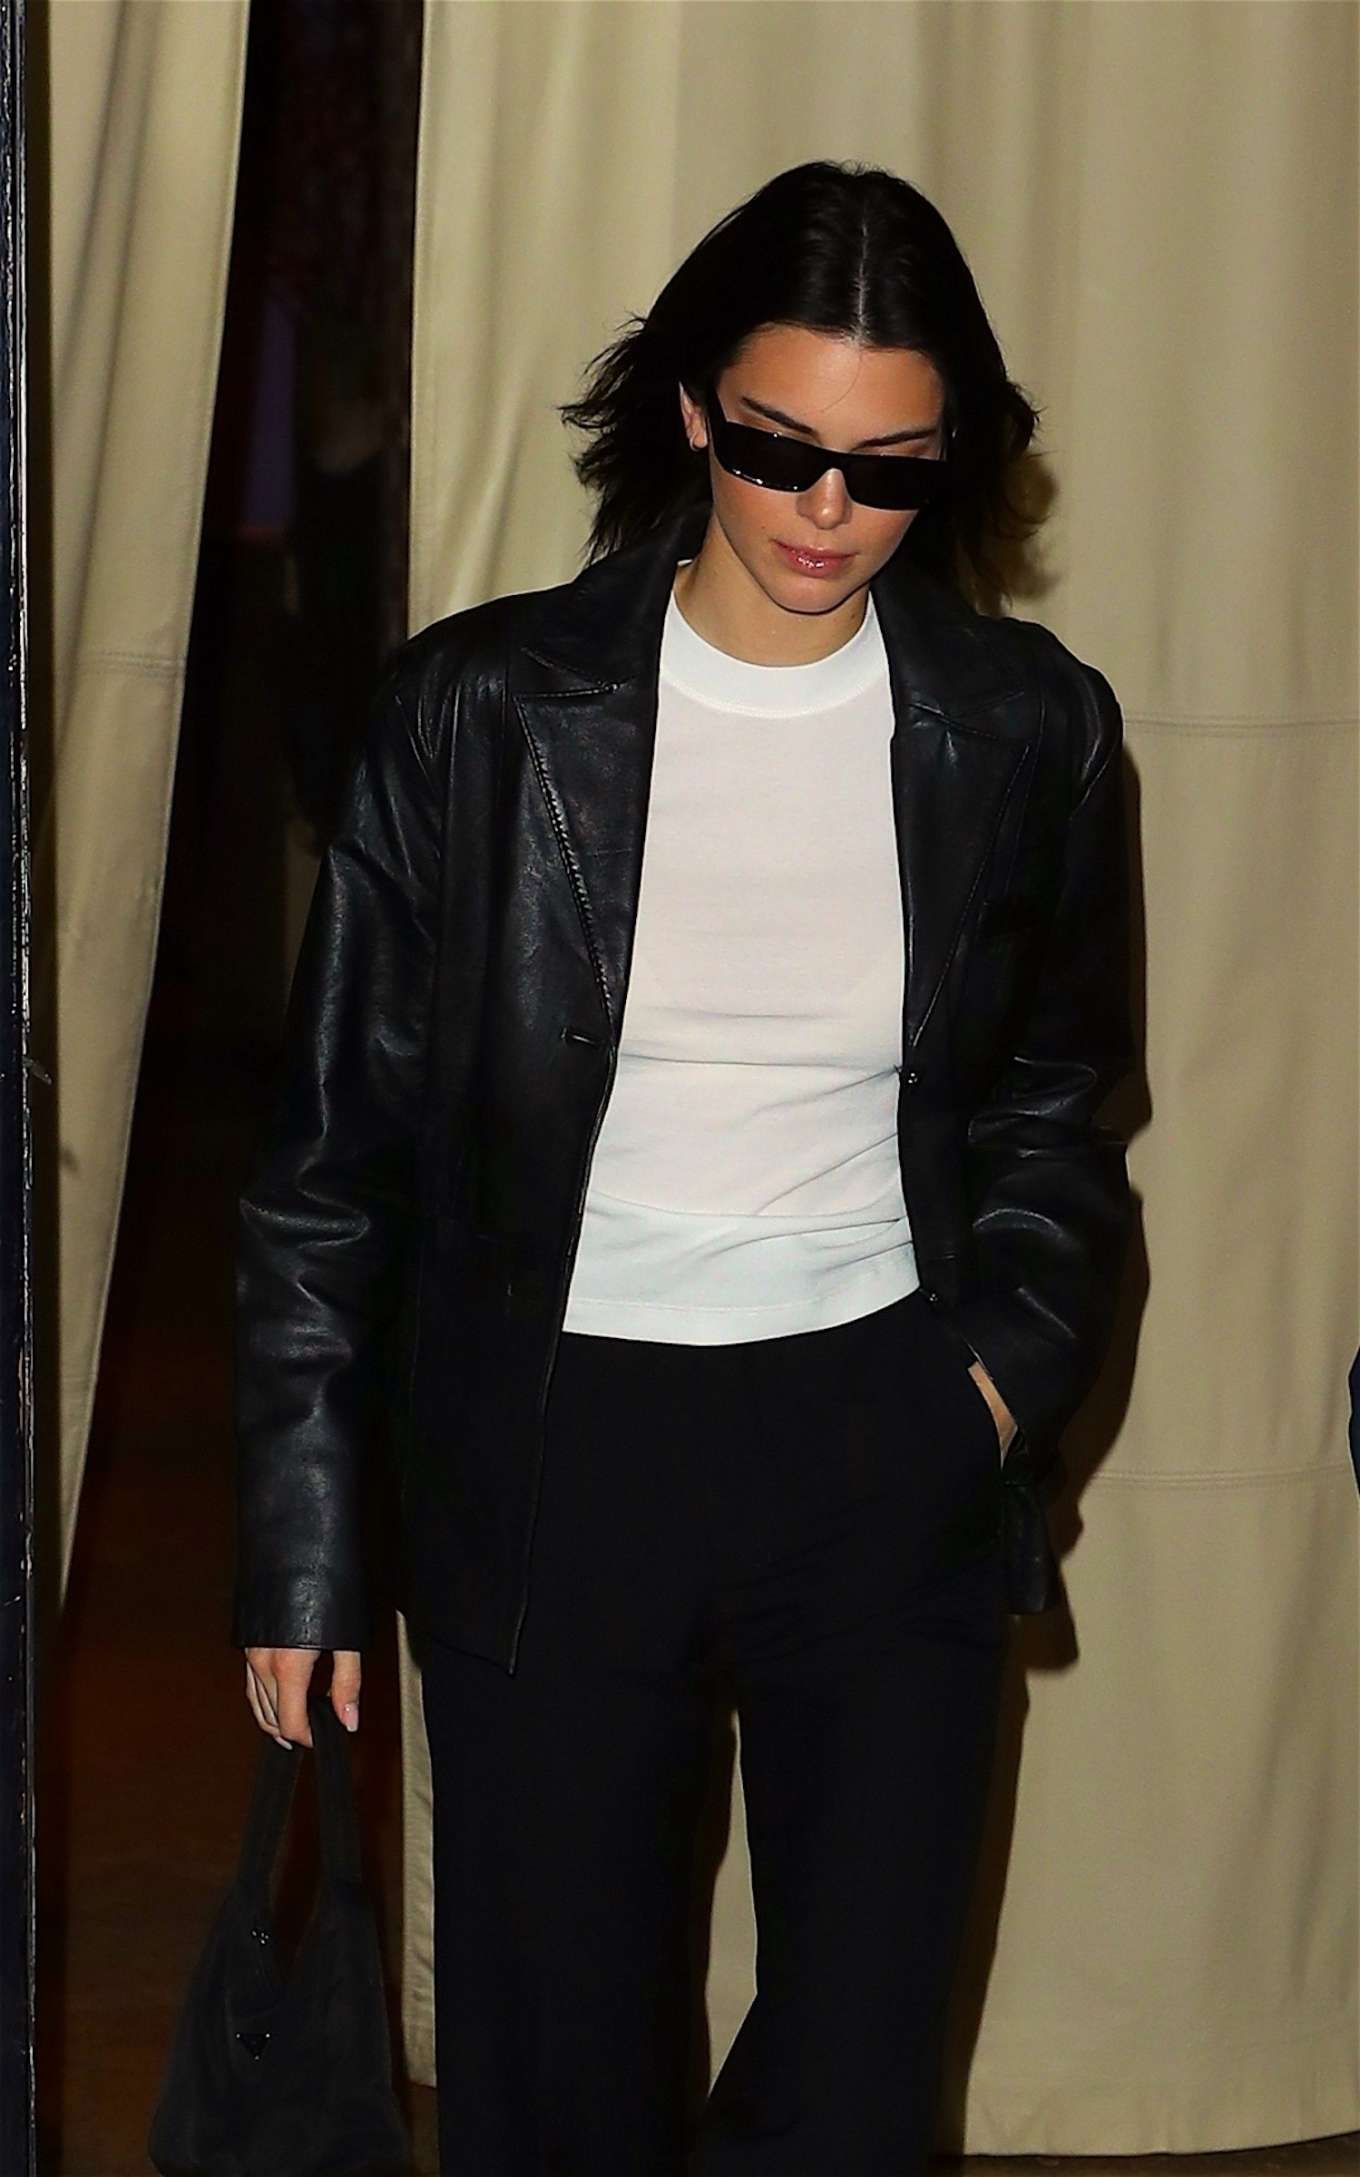 Kendall Jenner - Seen leaving her hotel in NYC